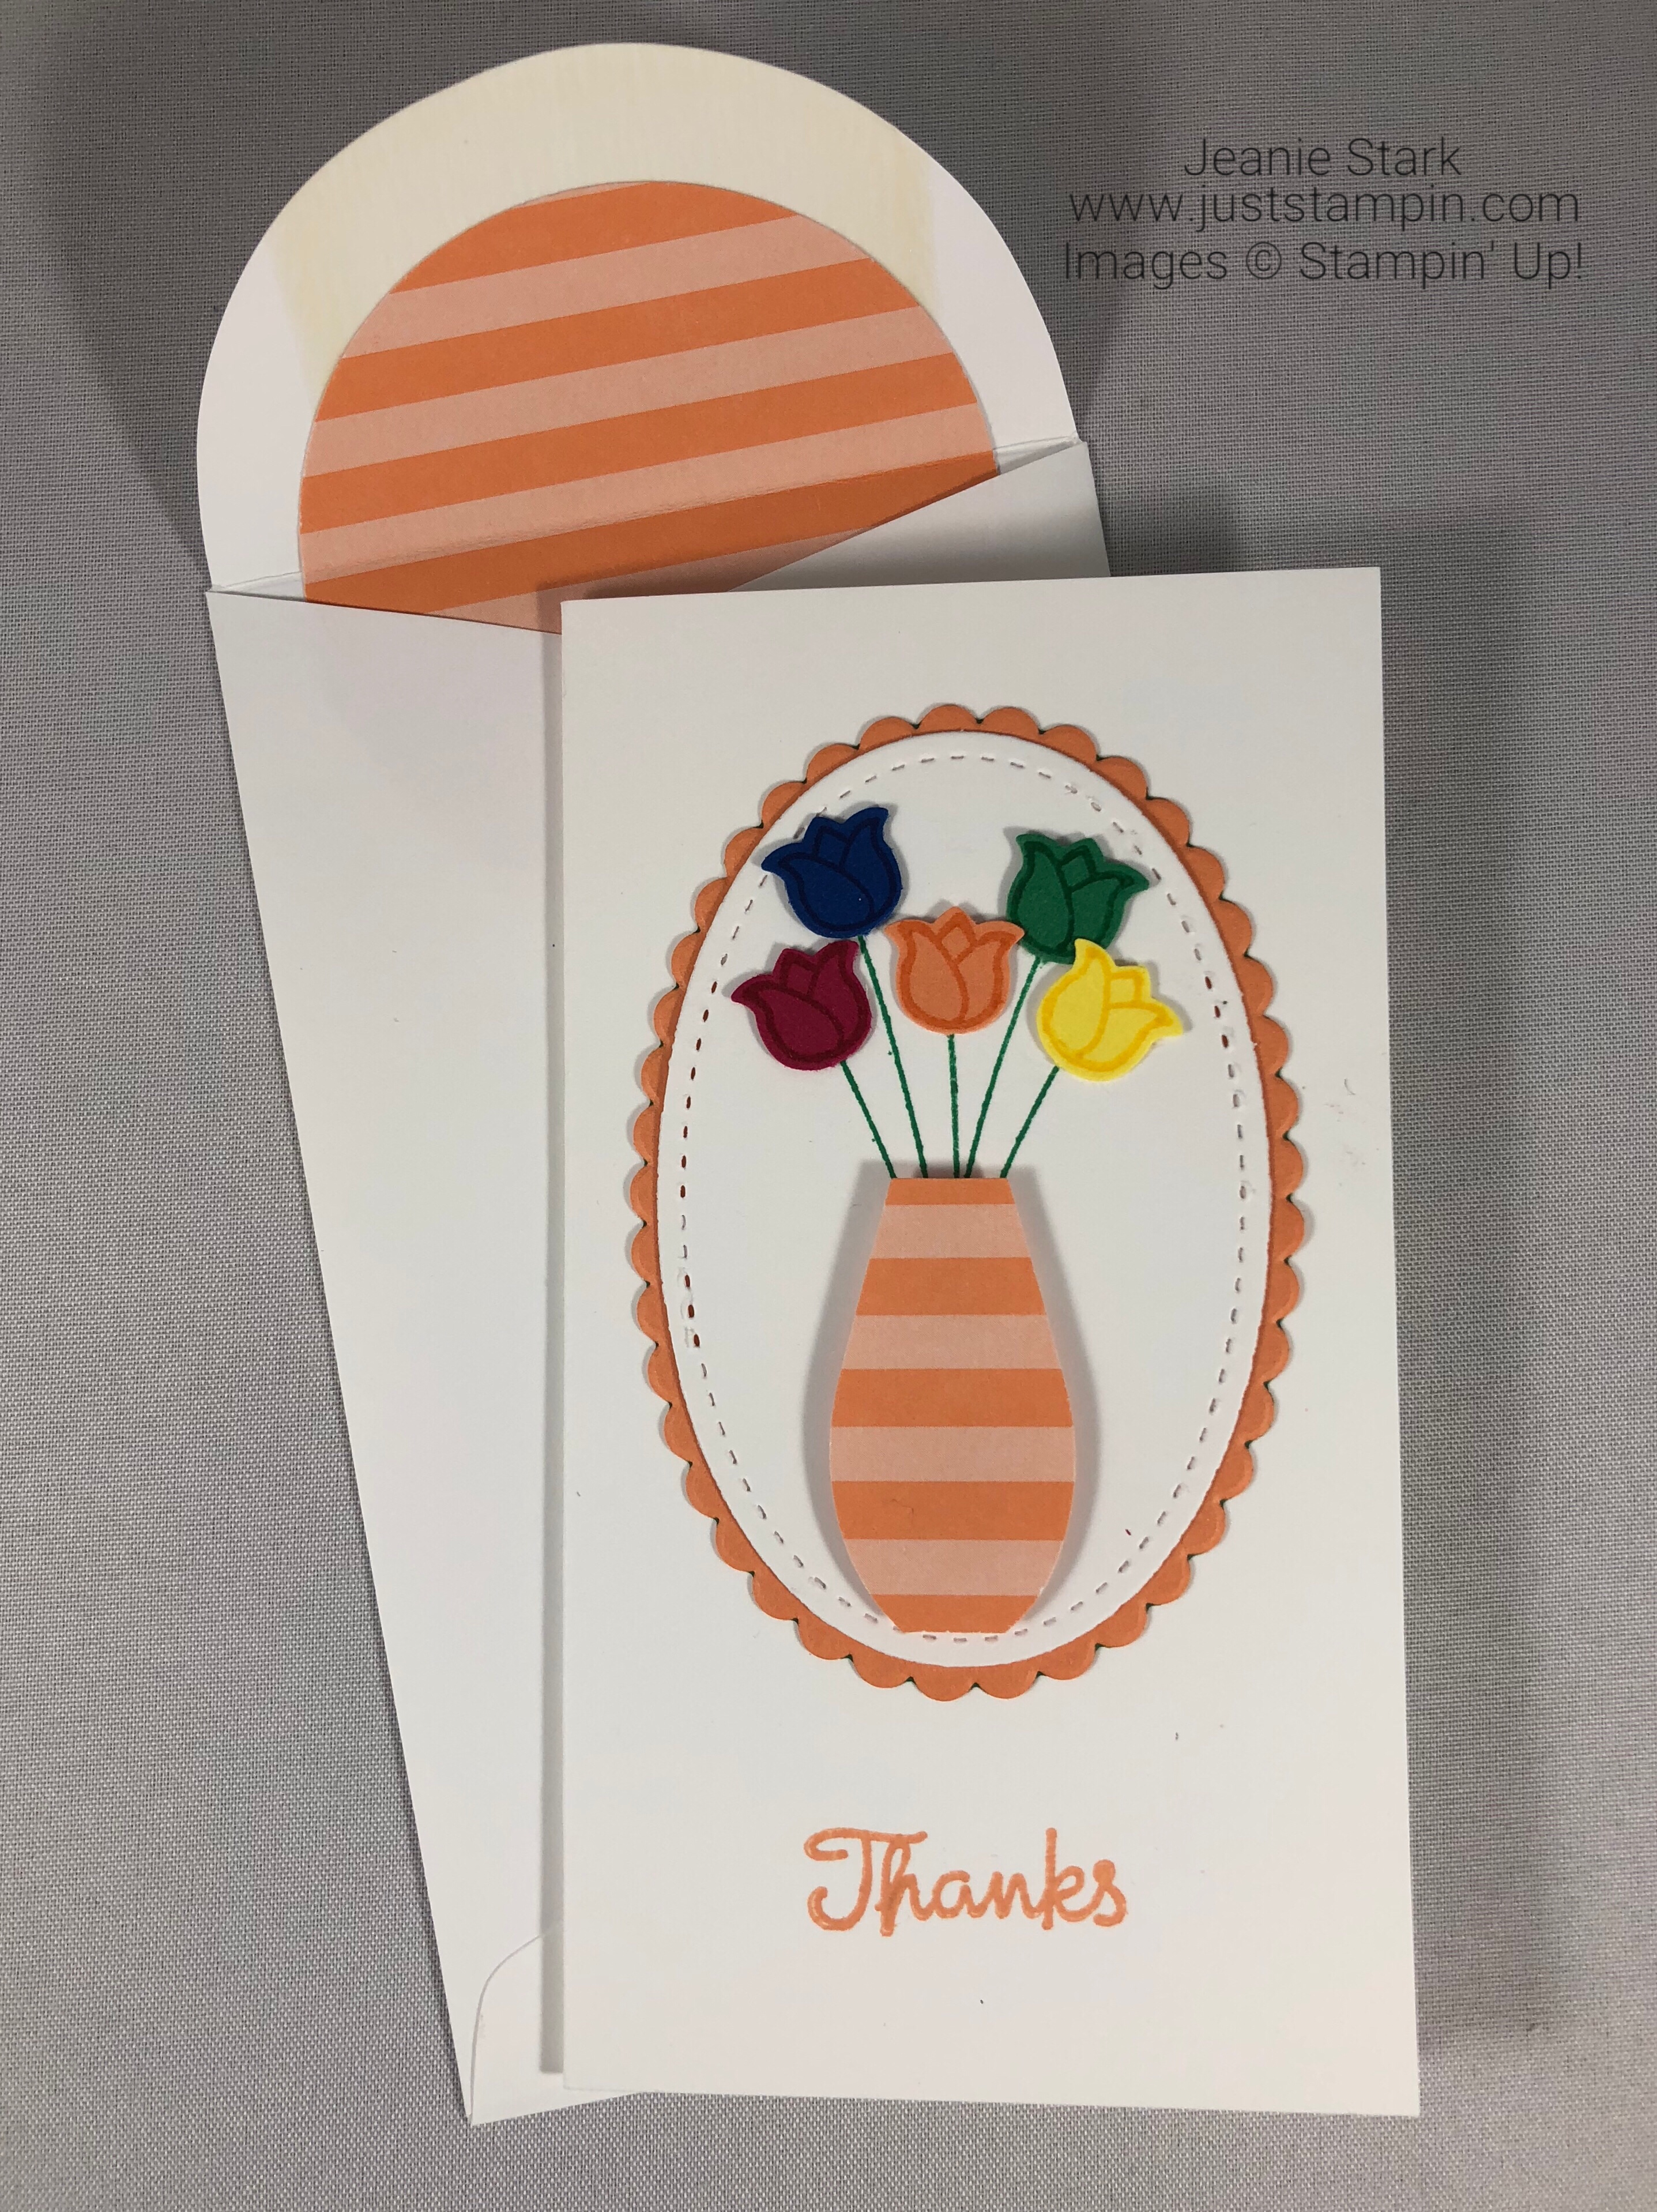 Stampin Up Varied Vases In Color thank you card idea - Jeanie Stark StampinUp